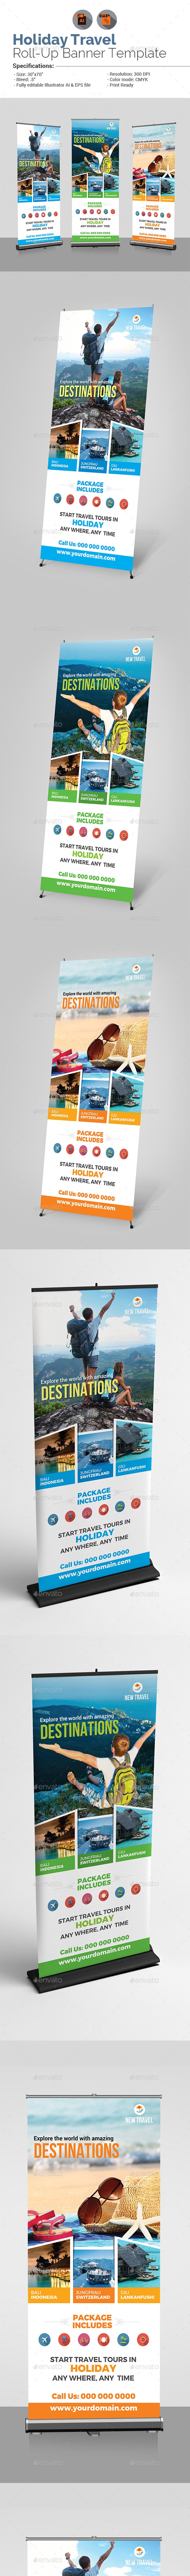 Holiday Travel Roll-Up Banner Template - Signage Print Templates